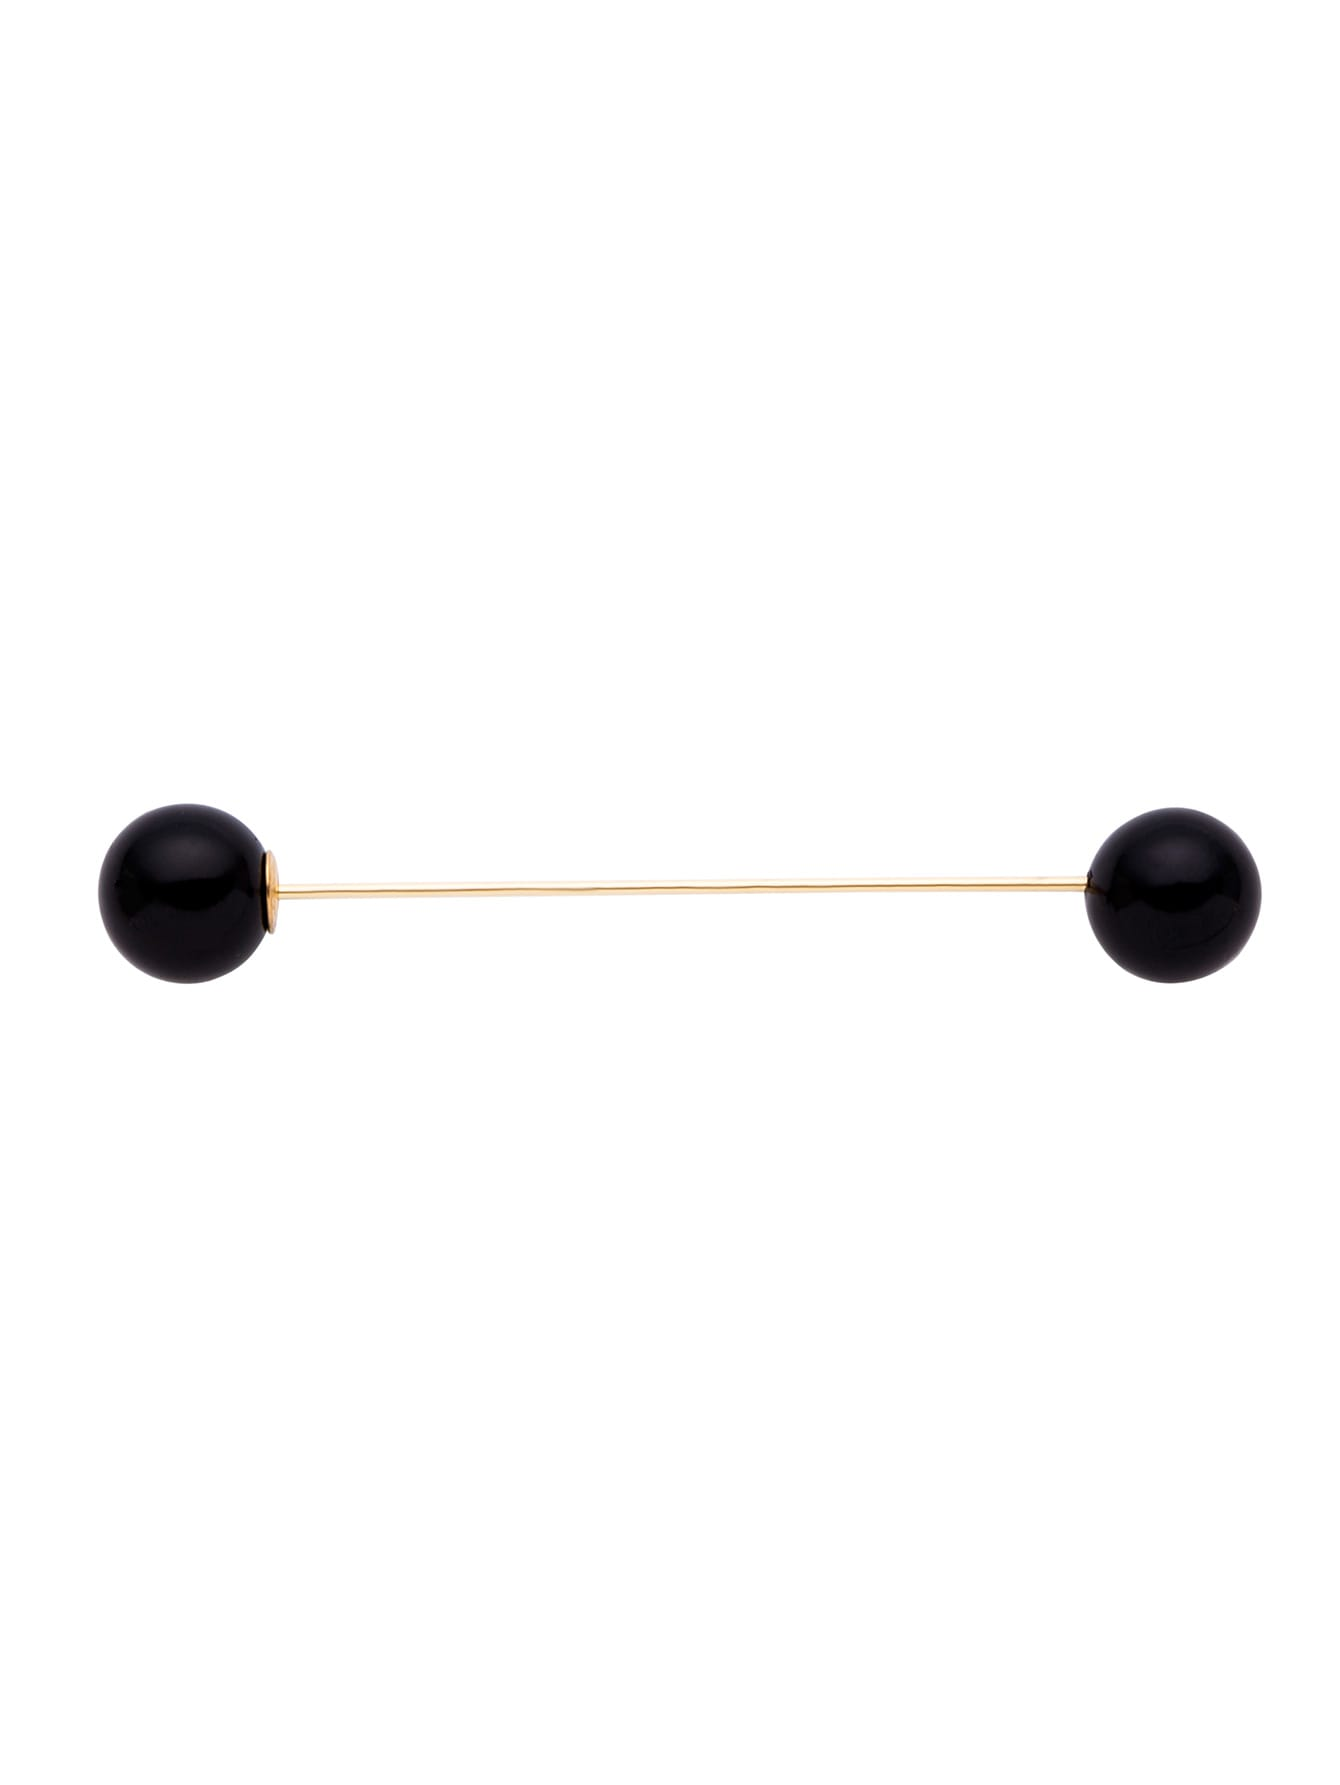 Black Double Faux Pearl Simple BroochBlack Double Faux Pearl Simple Brooch<br><br>color: Black<br>size: None